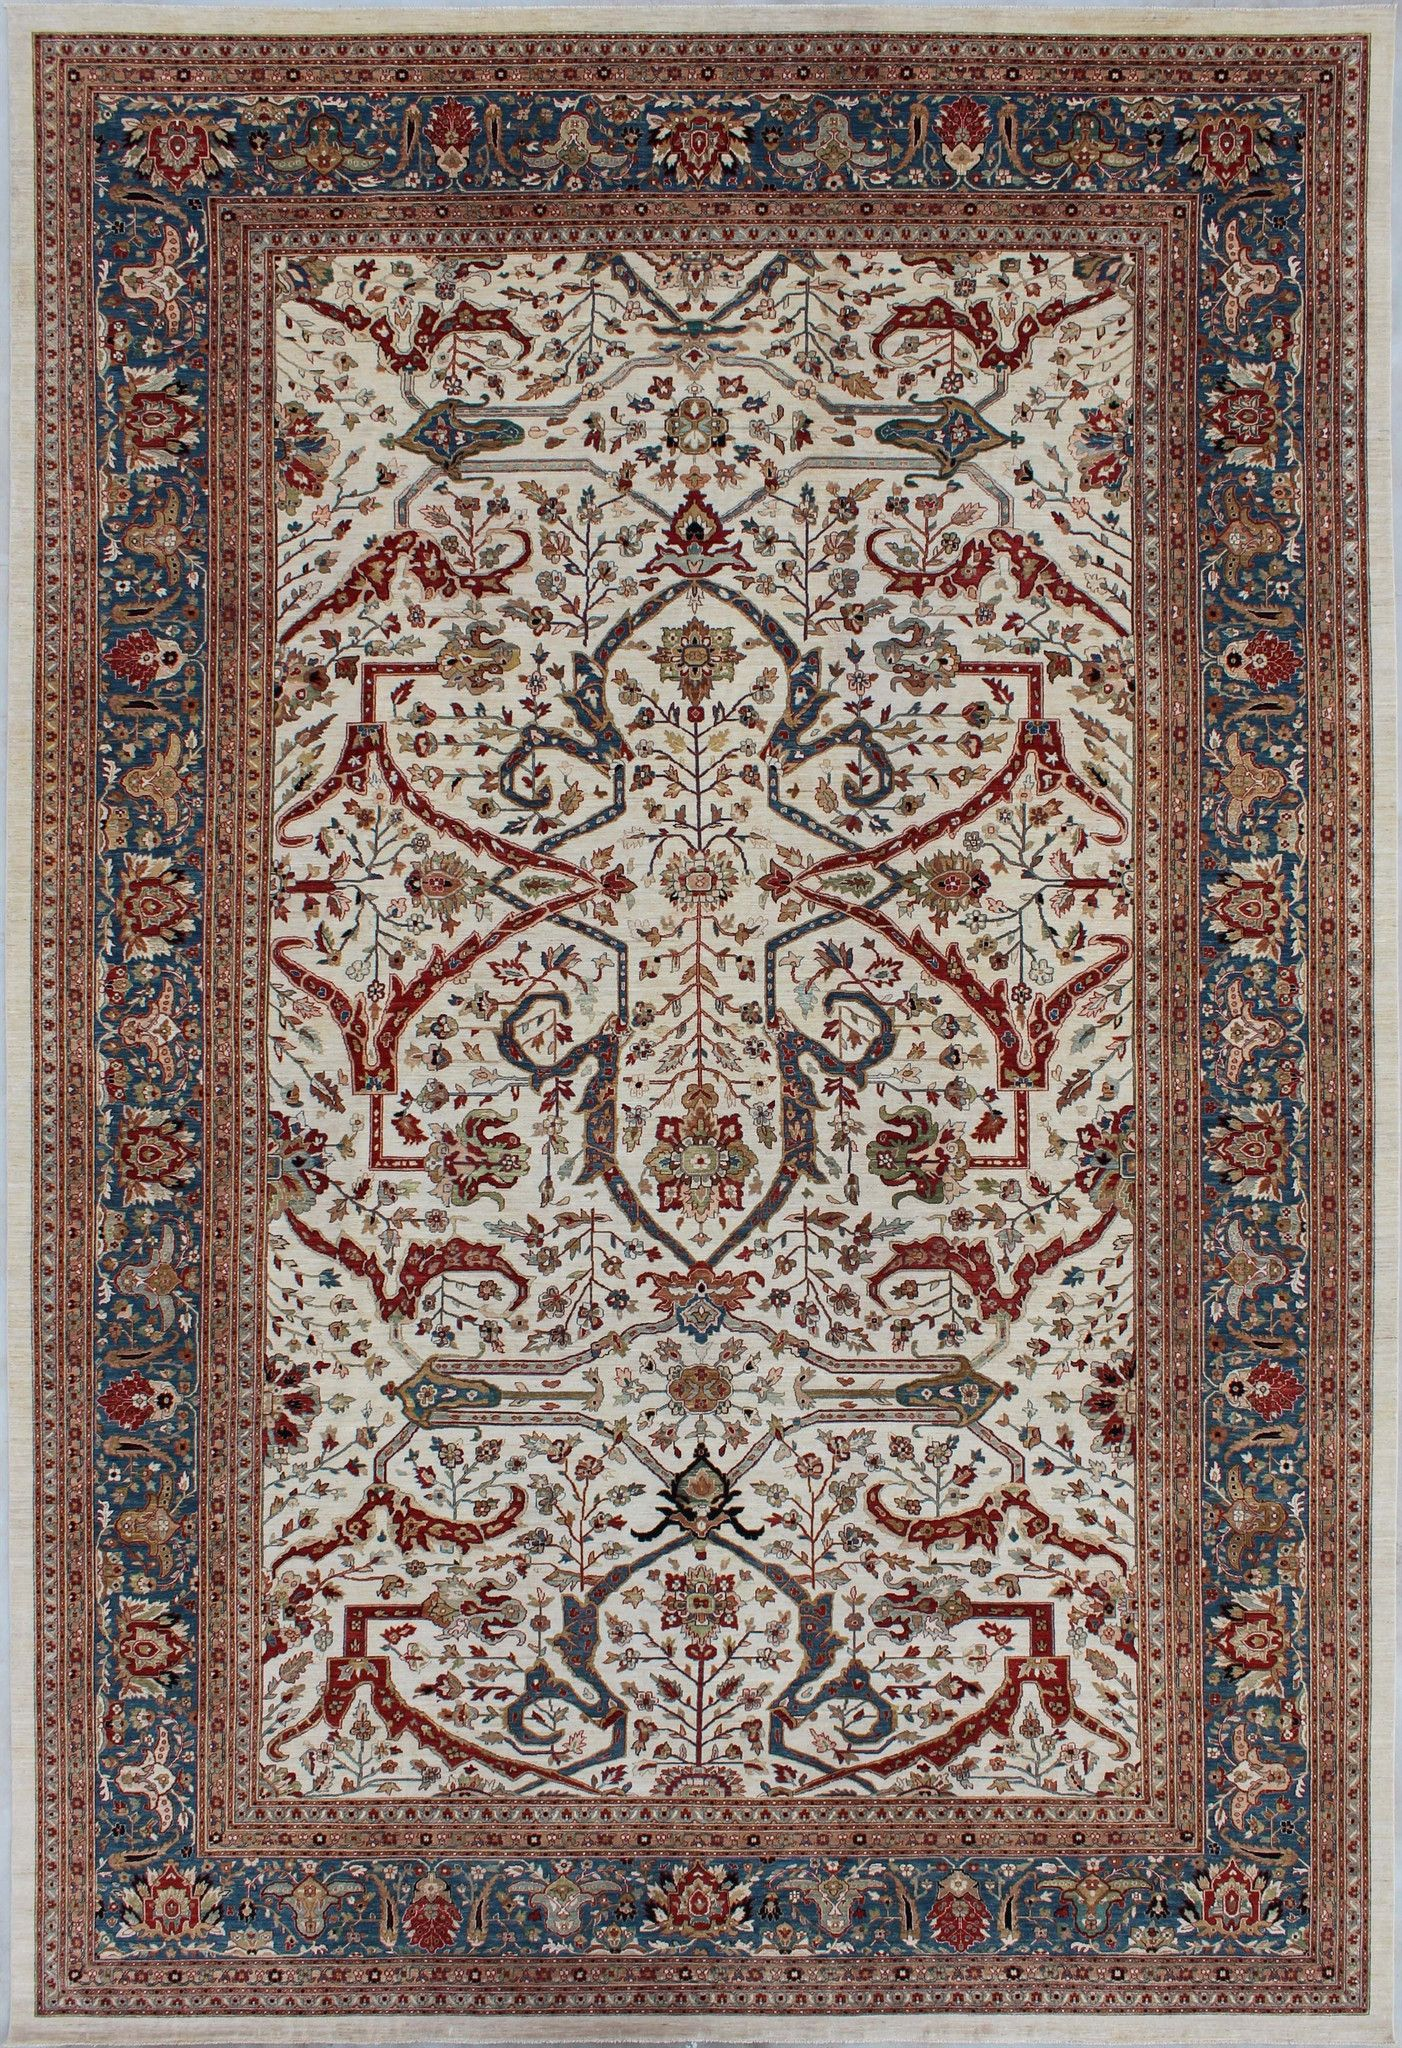 New Afghanistan Hand Woven Antique Reproduction Of A 19th Century Persian Ferahan Carpet 4 X 6 13 19